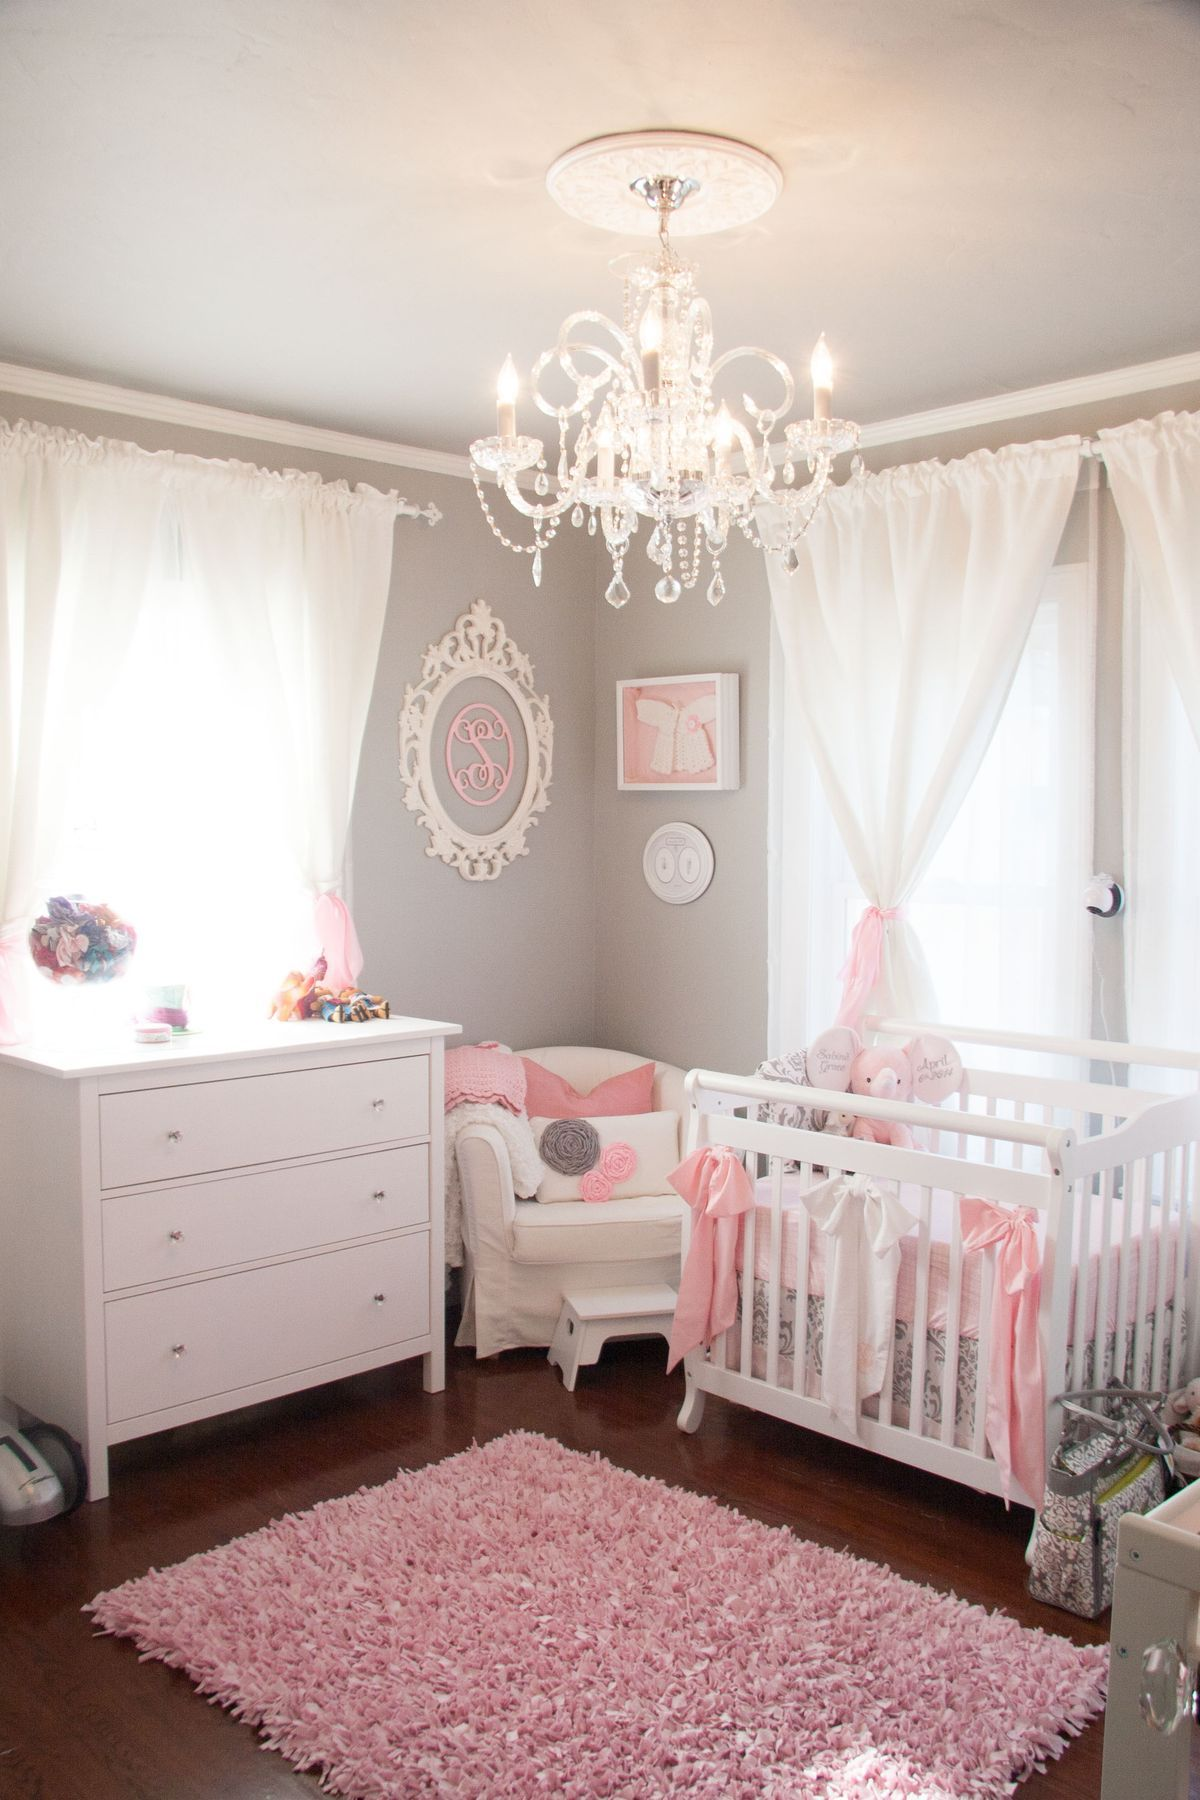 Baby nurseries ideas Tiny Budget in a